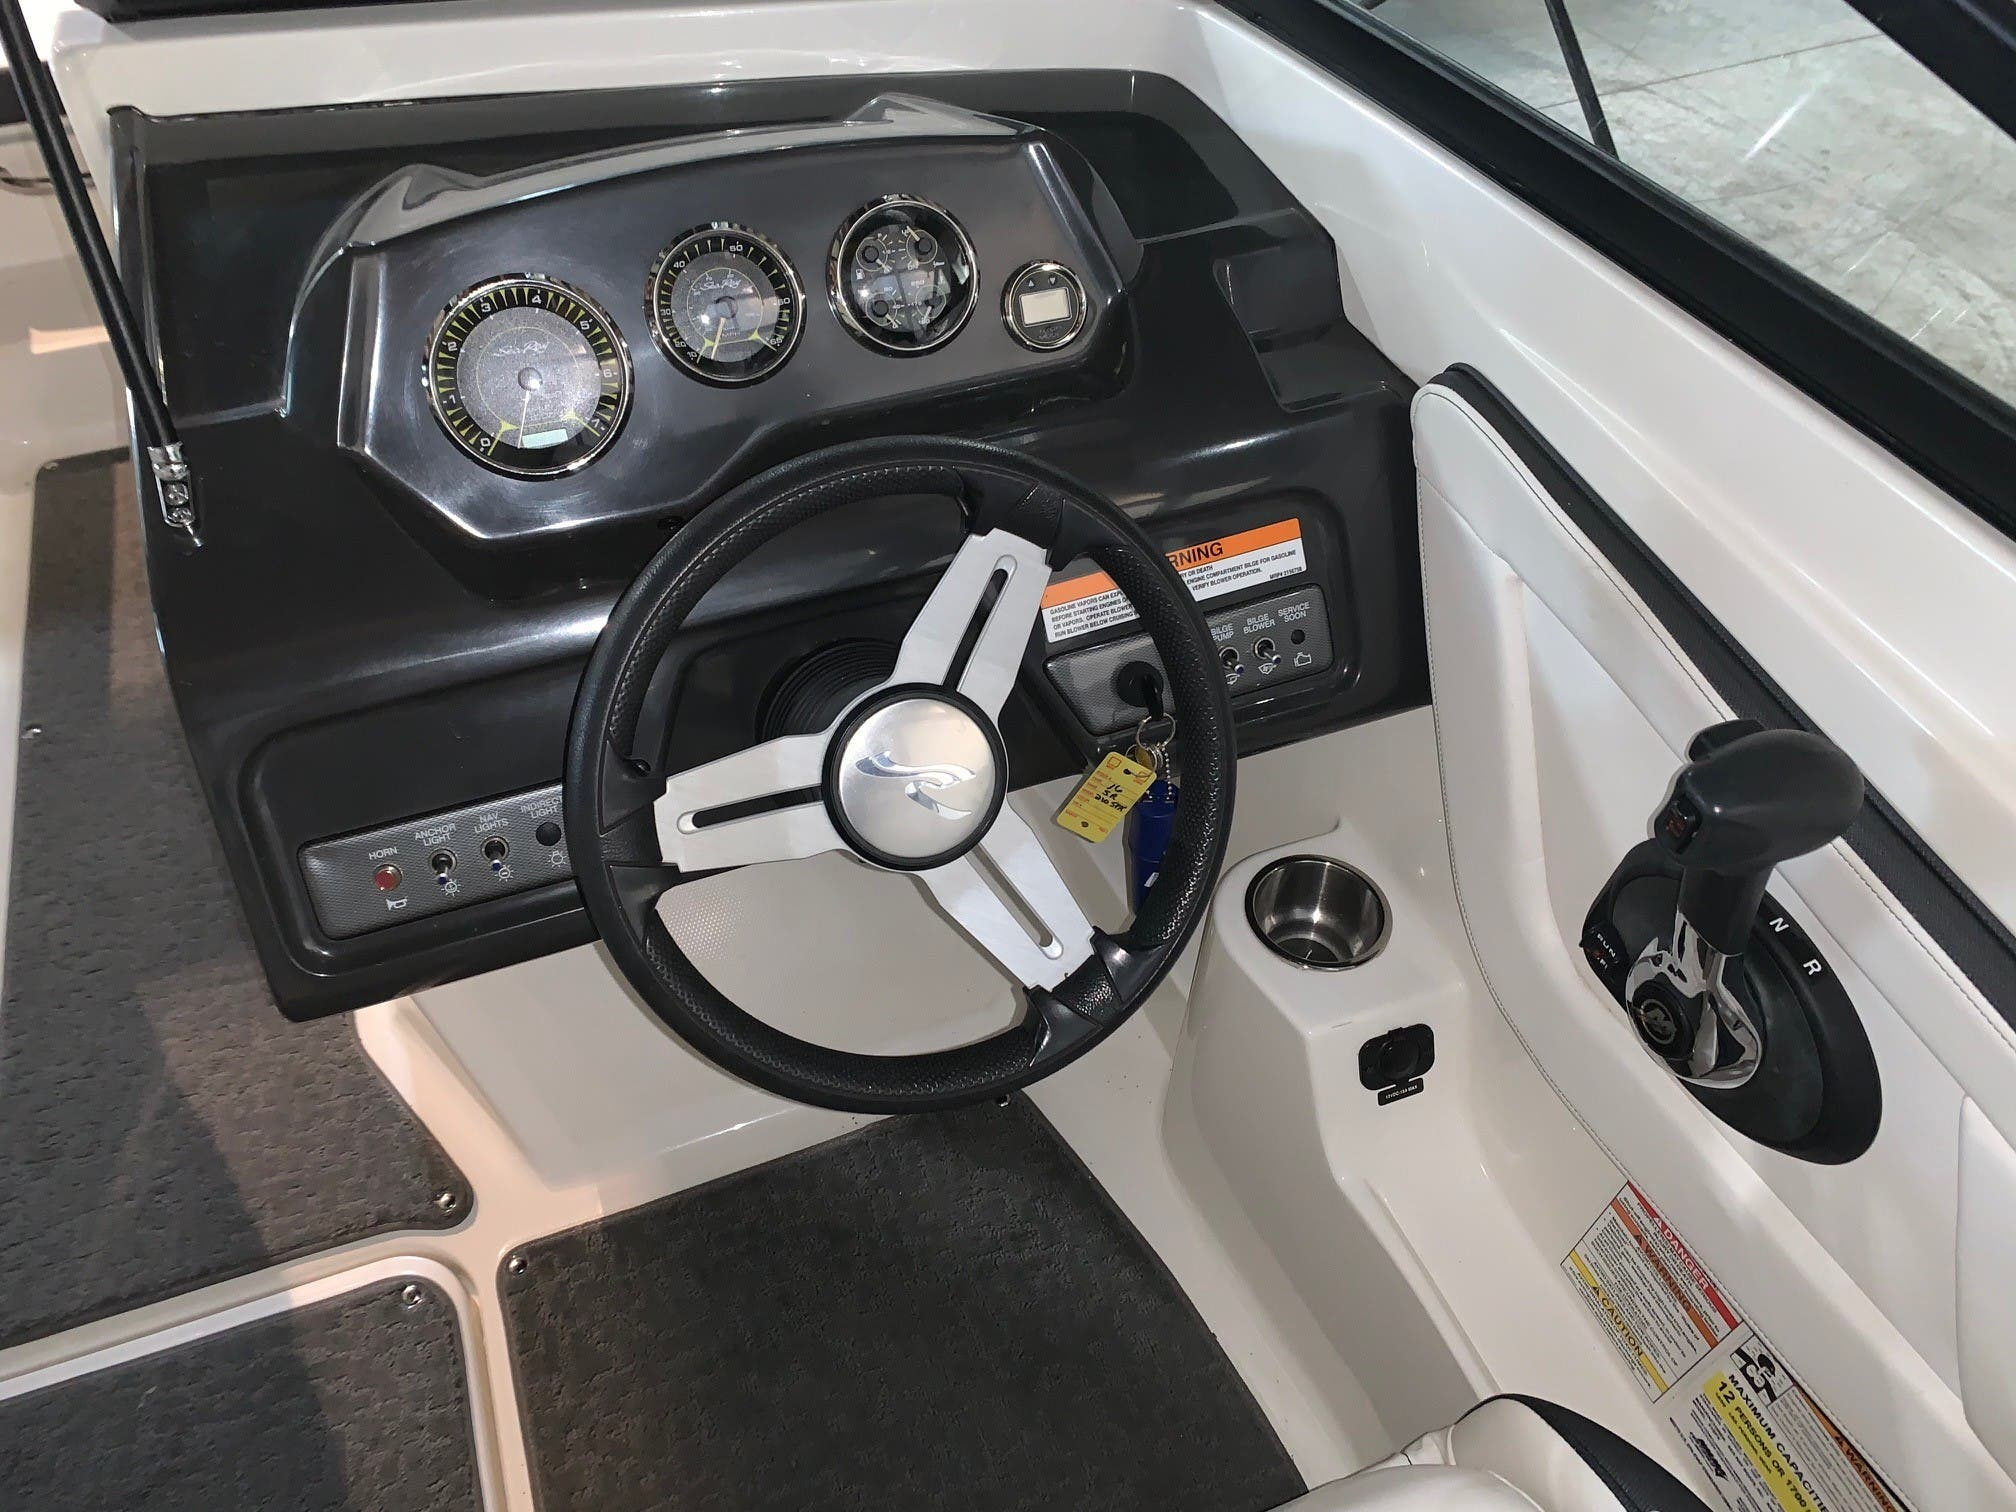 2016 Sea Ray boat for sale, model of the boat is 210spx & Image # 5 of 8